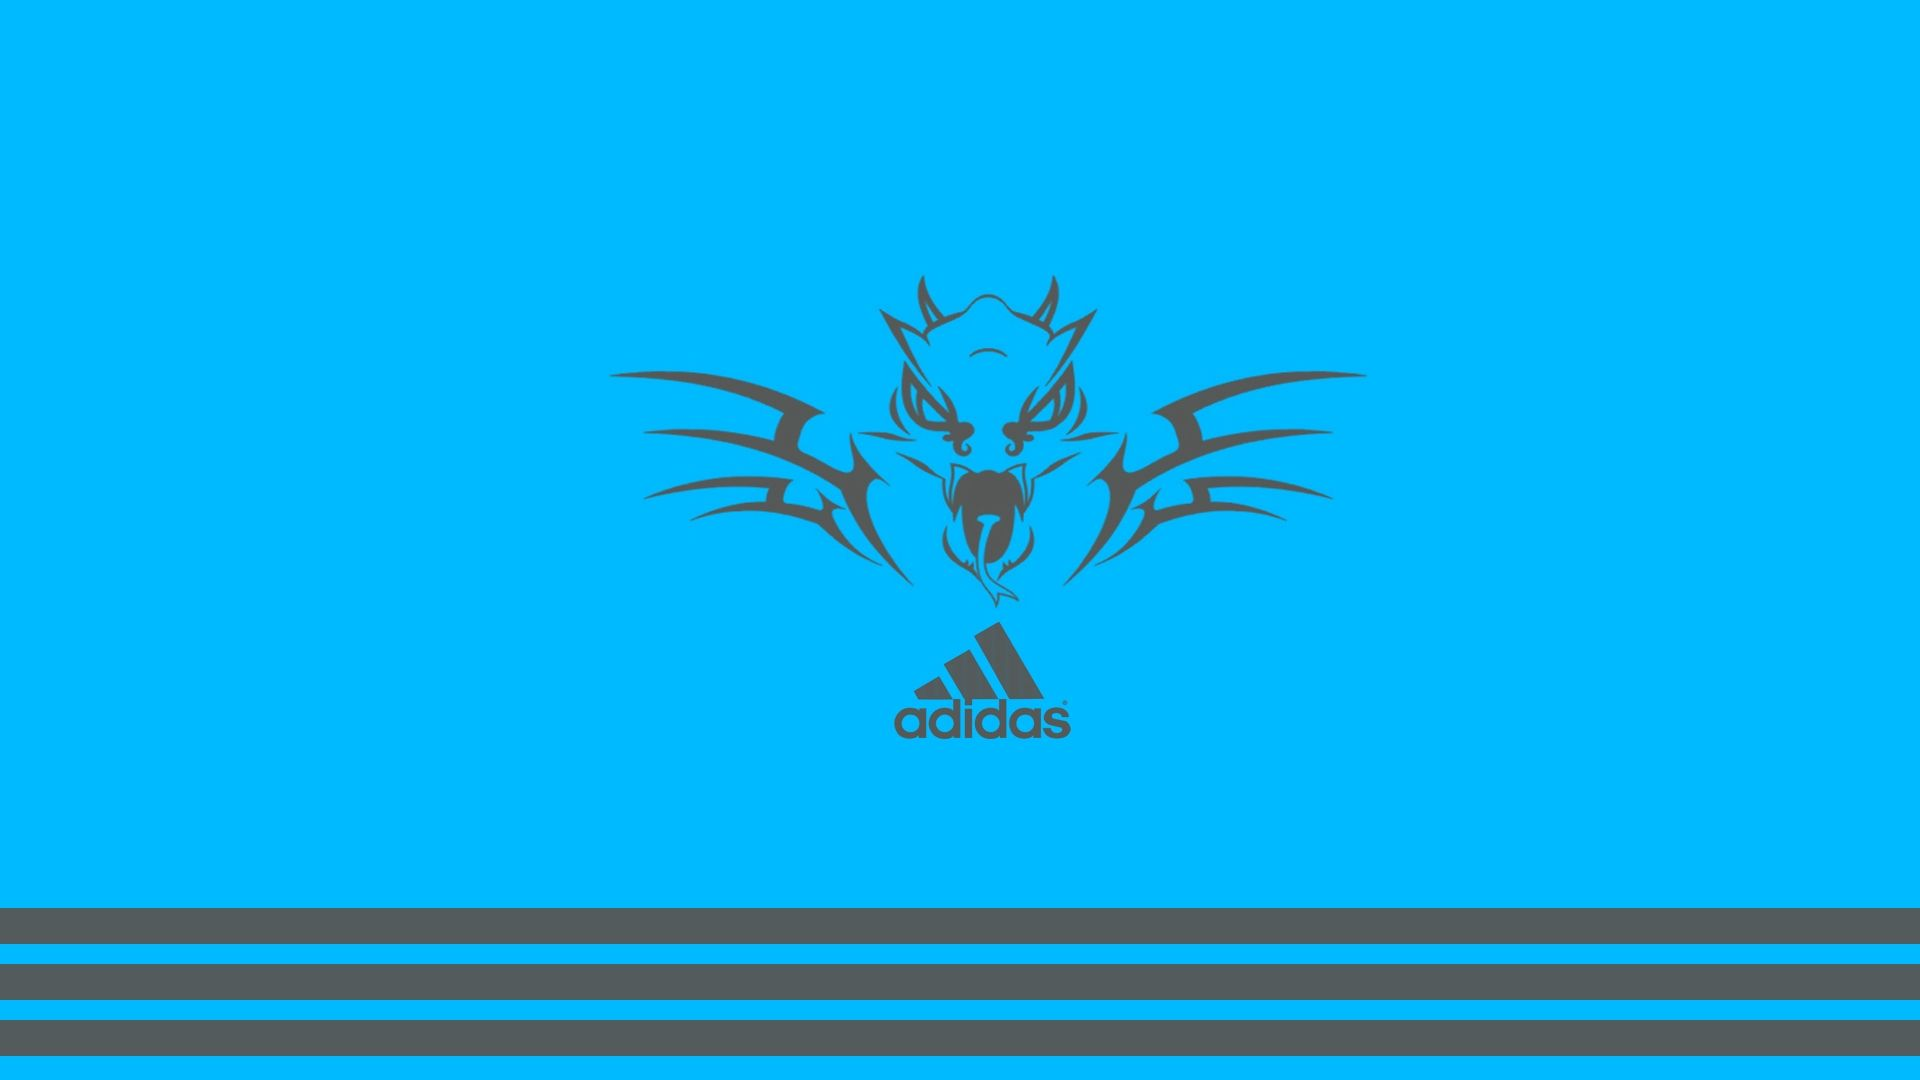 Picture Wallpaper Adidas